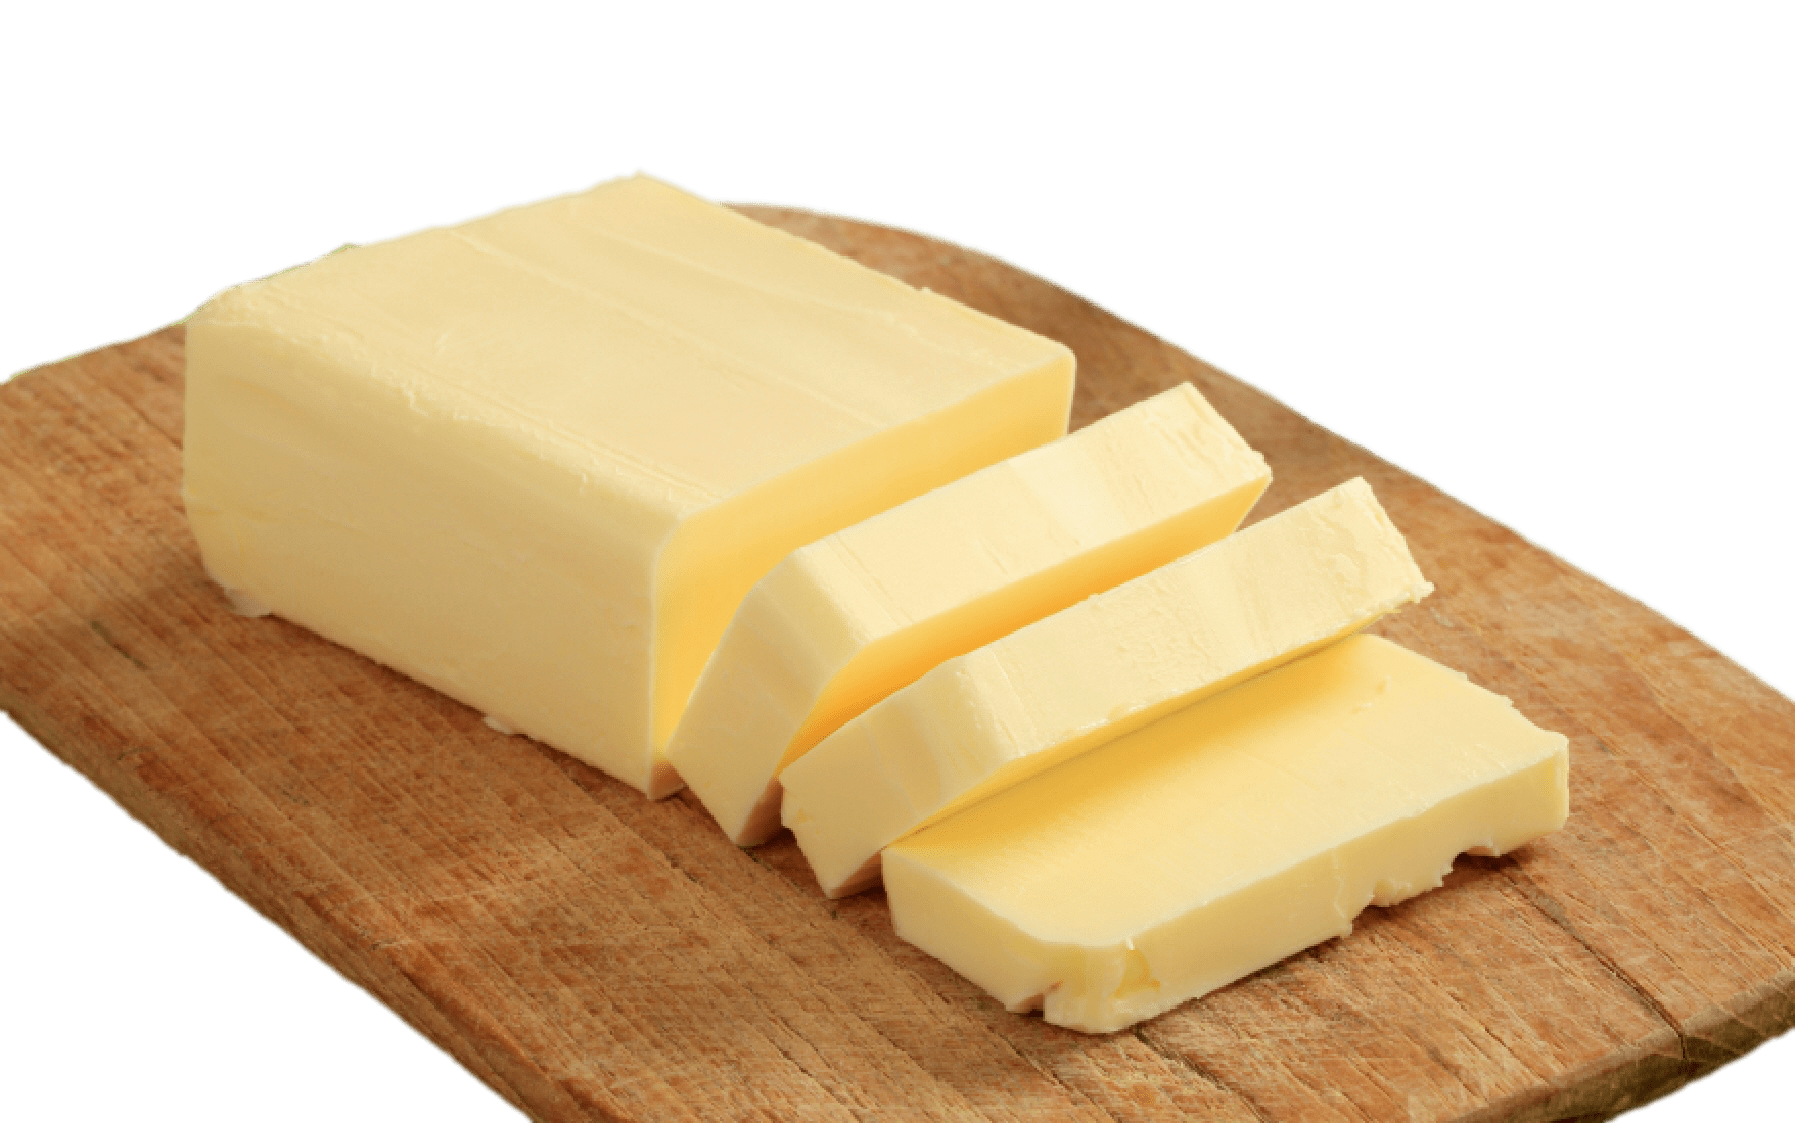 Butter clipart png. On wooden plank transparent